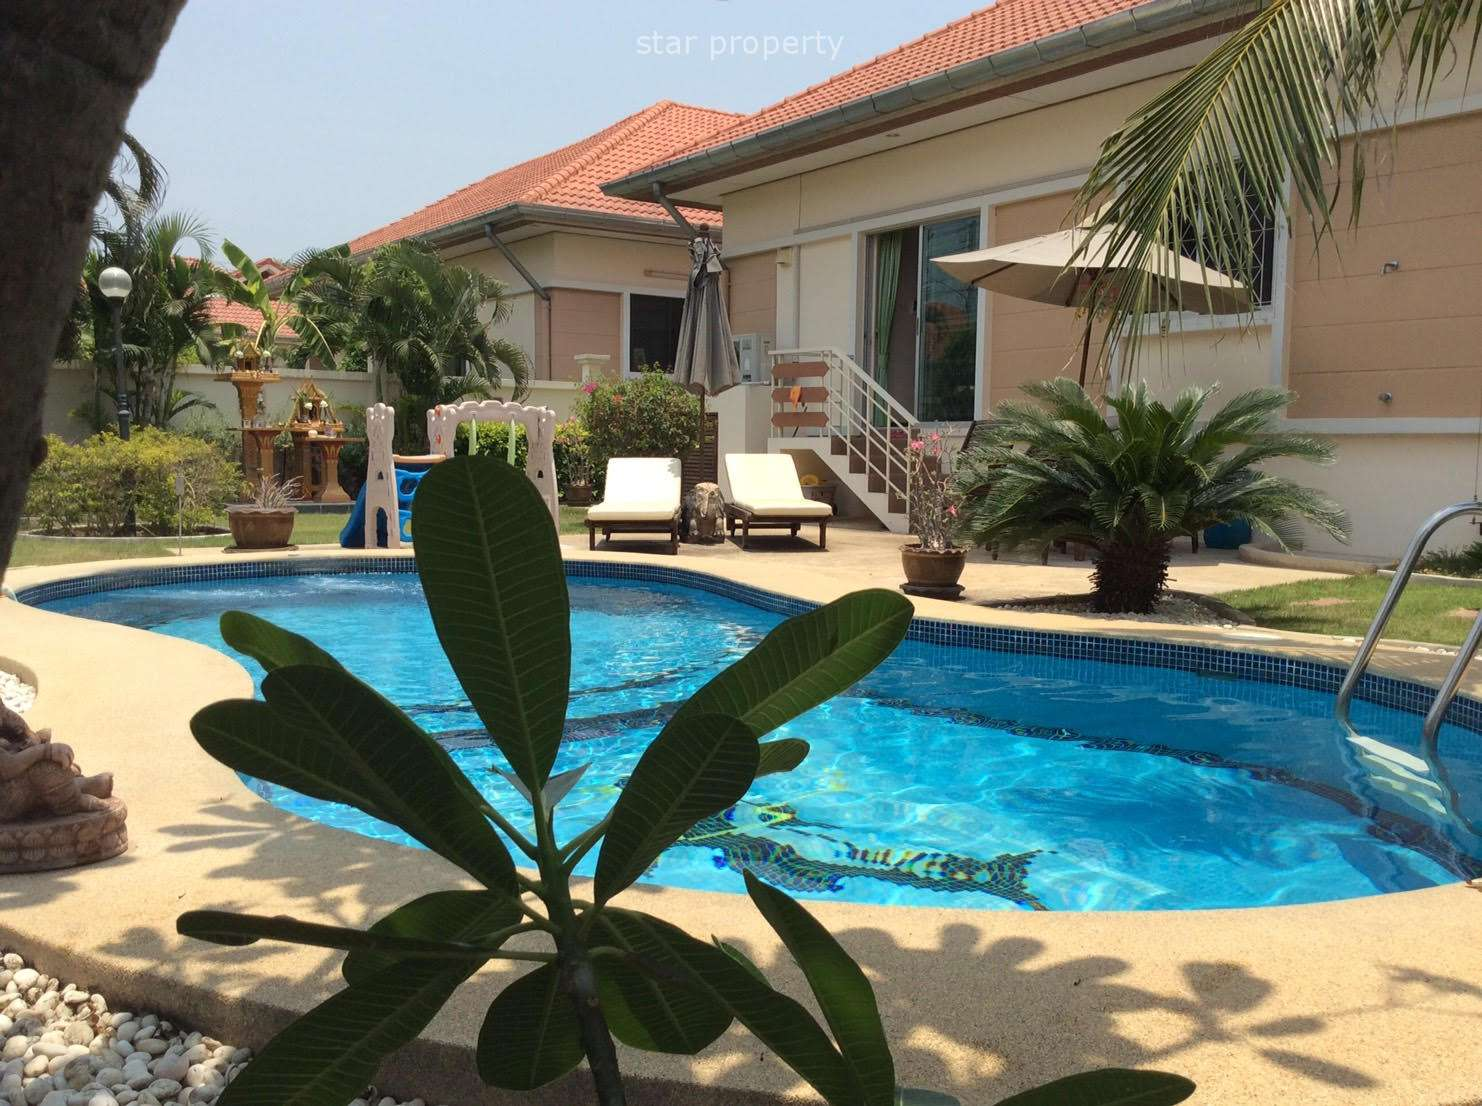 Beautiful Pool Villa for Rent at Hua Hin District, Prachuap Khiri Khan, Thailand